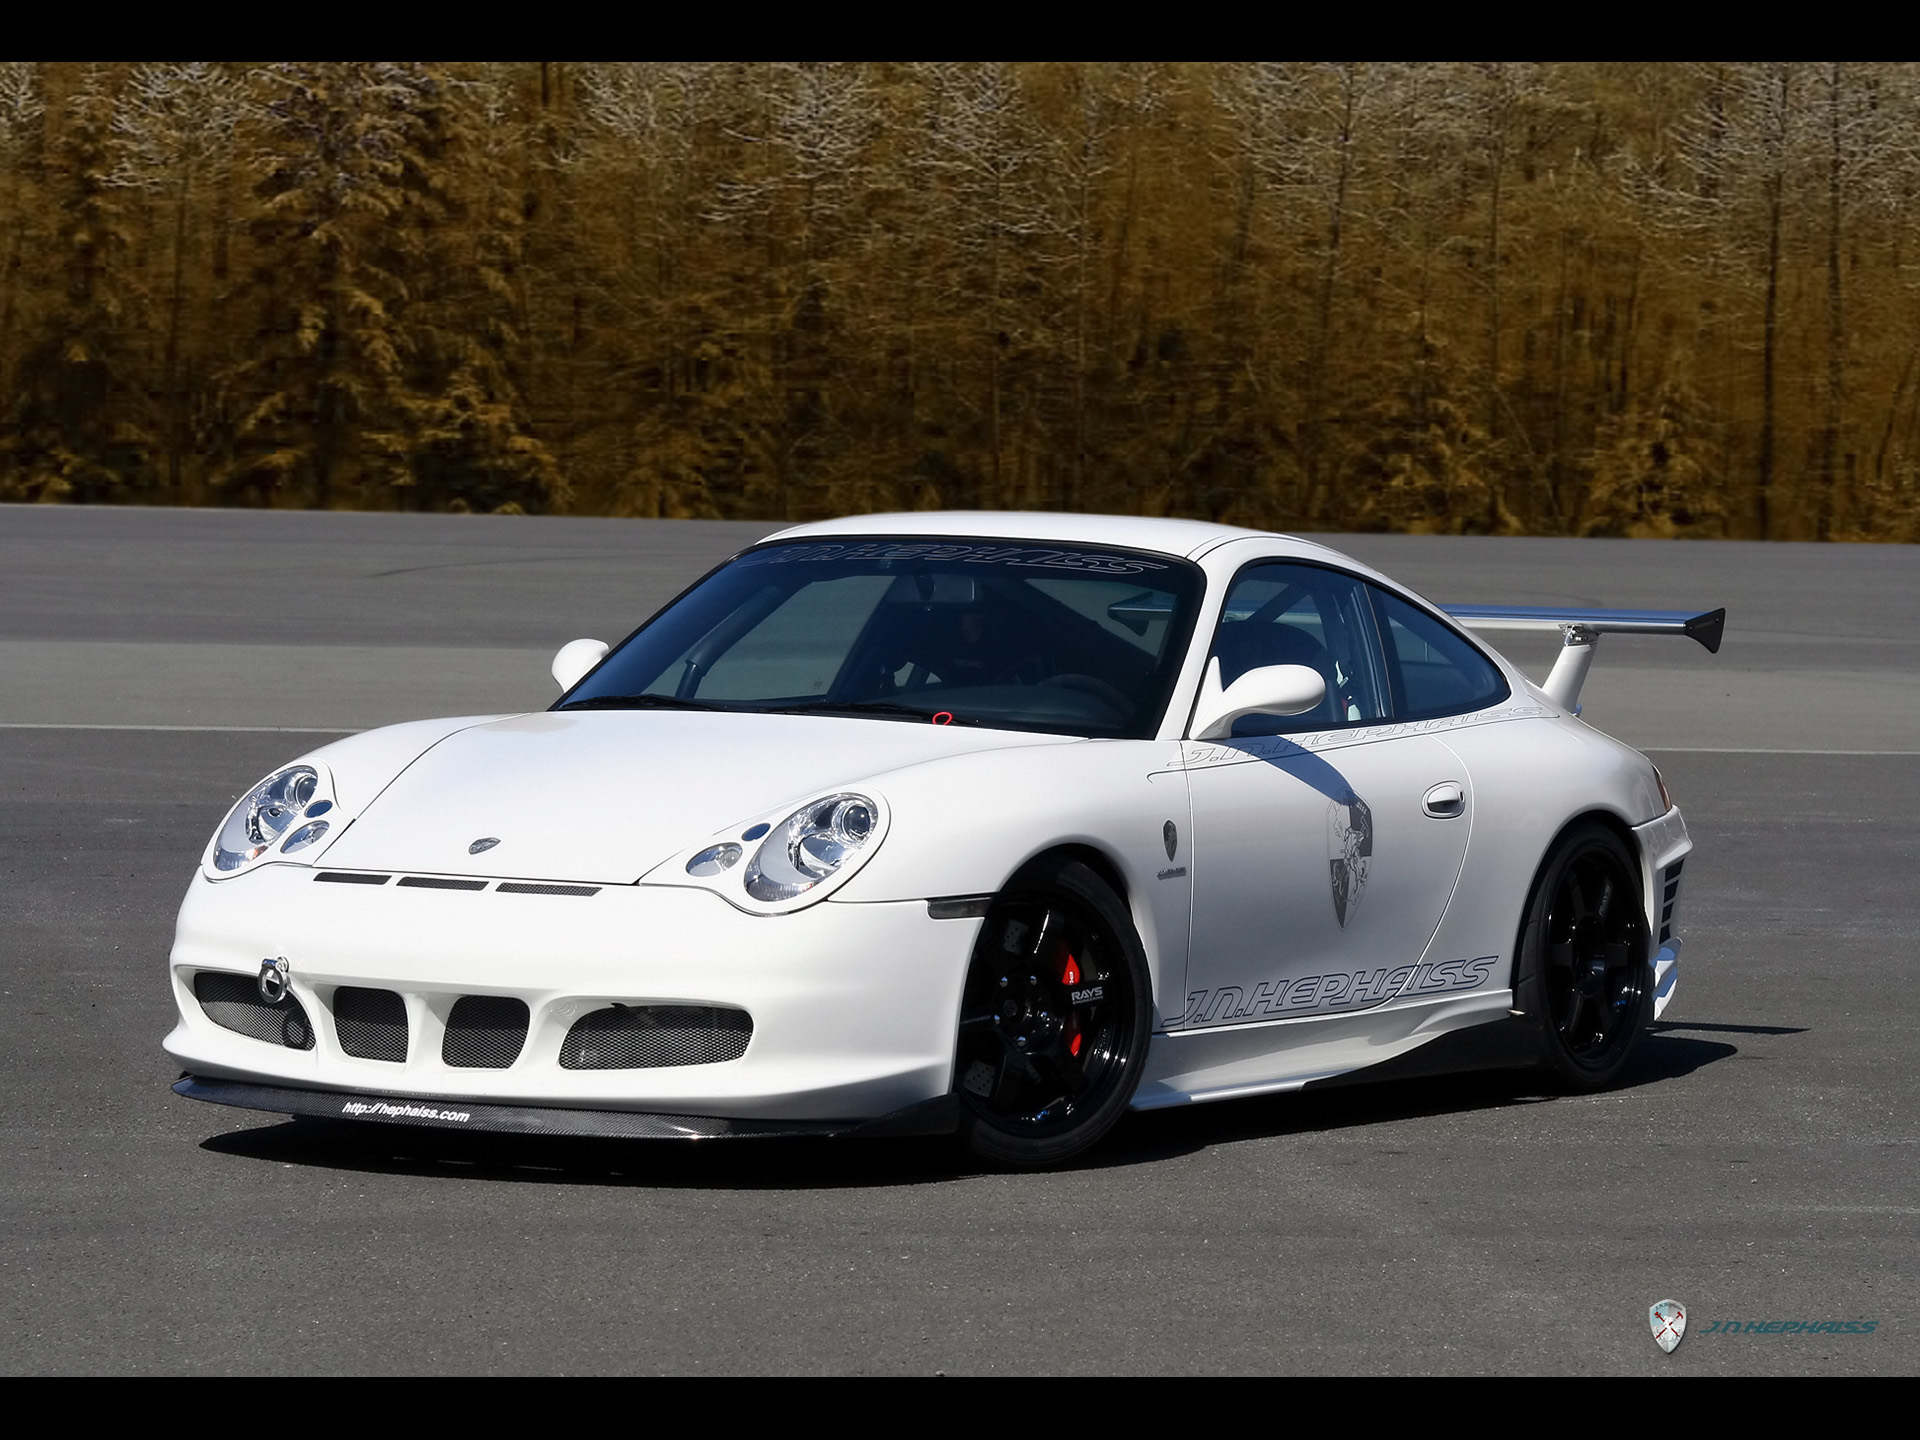 JNH Porsche 996 GT3 Version 02 photo 44247